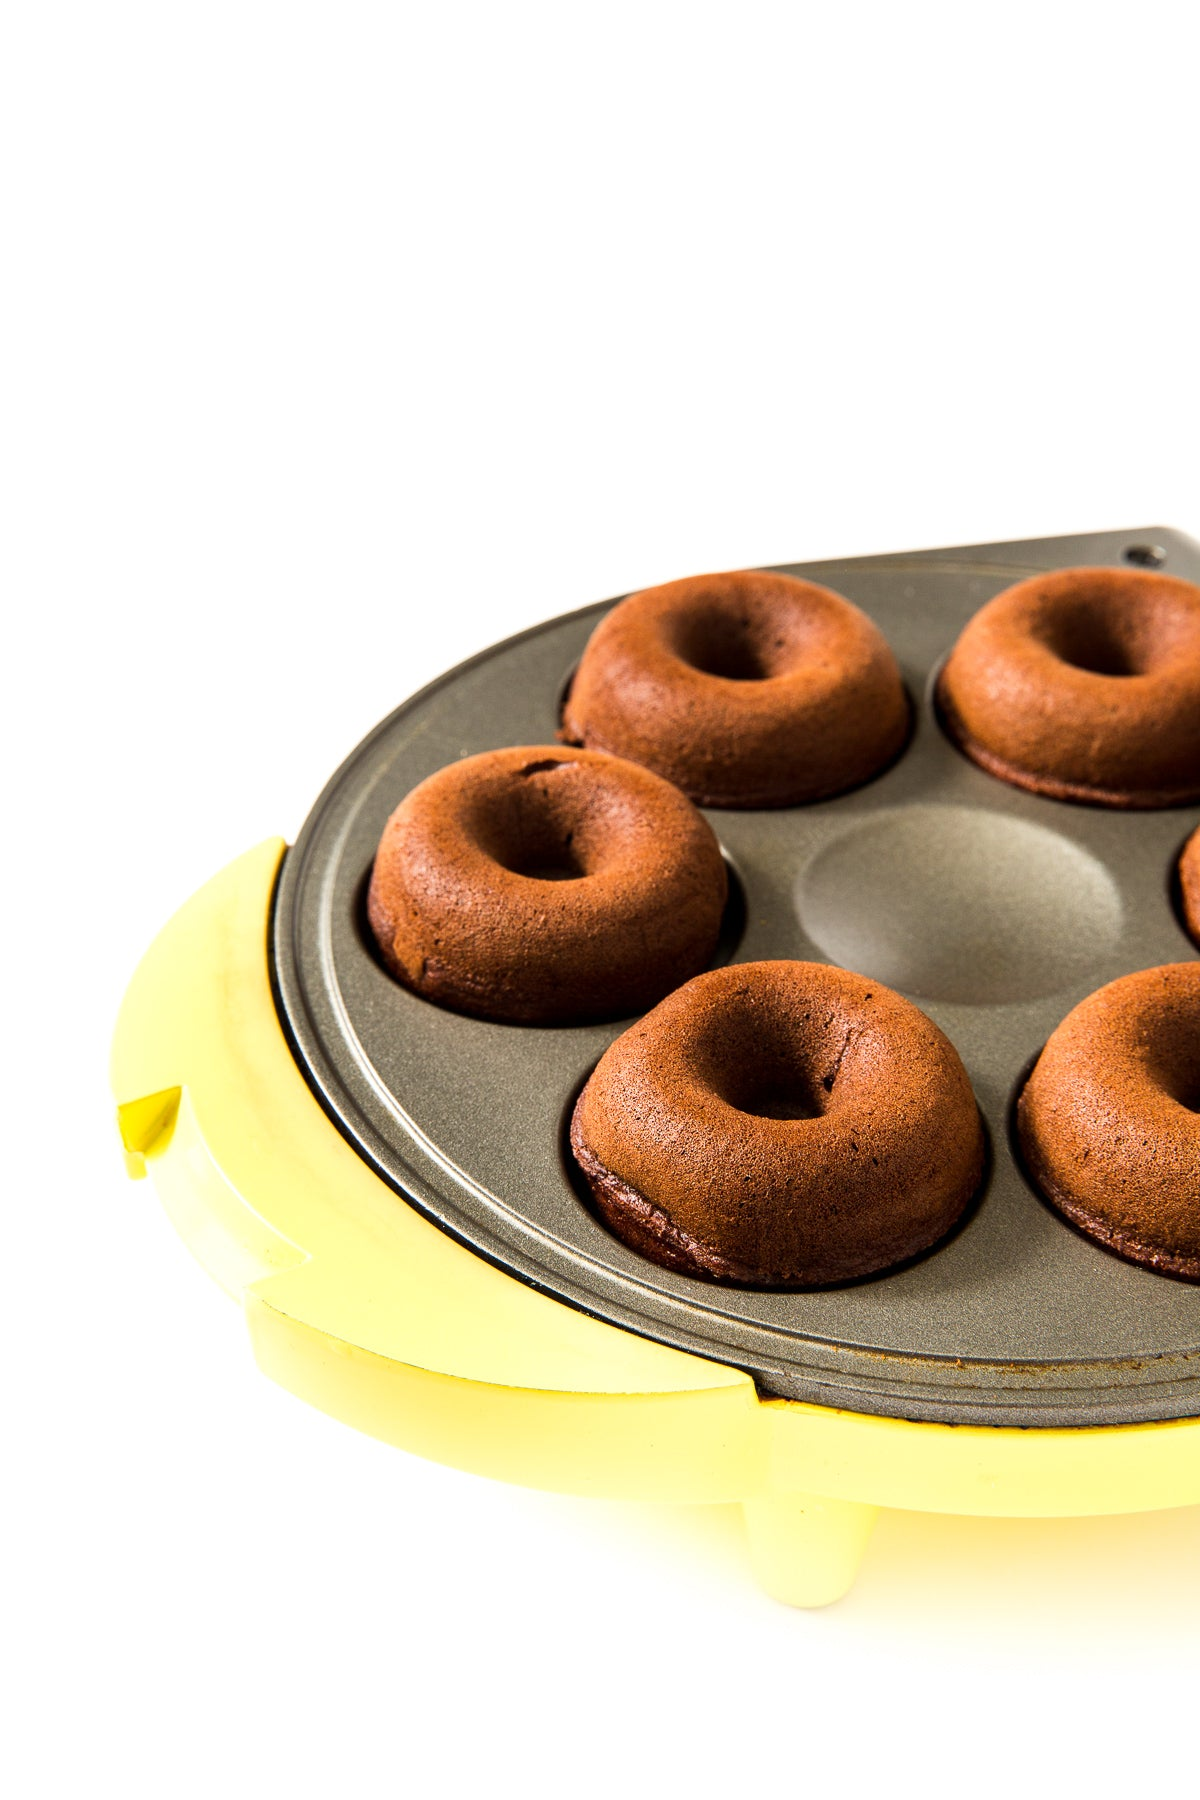 Close up image of Miss Jones Baking Co Guinness Glazed Chocolate Donuts in a yellow donut maker mold